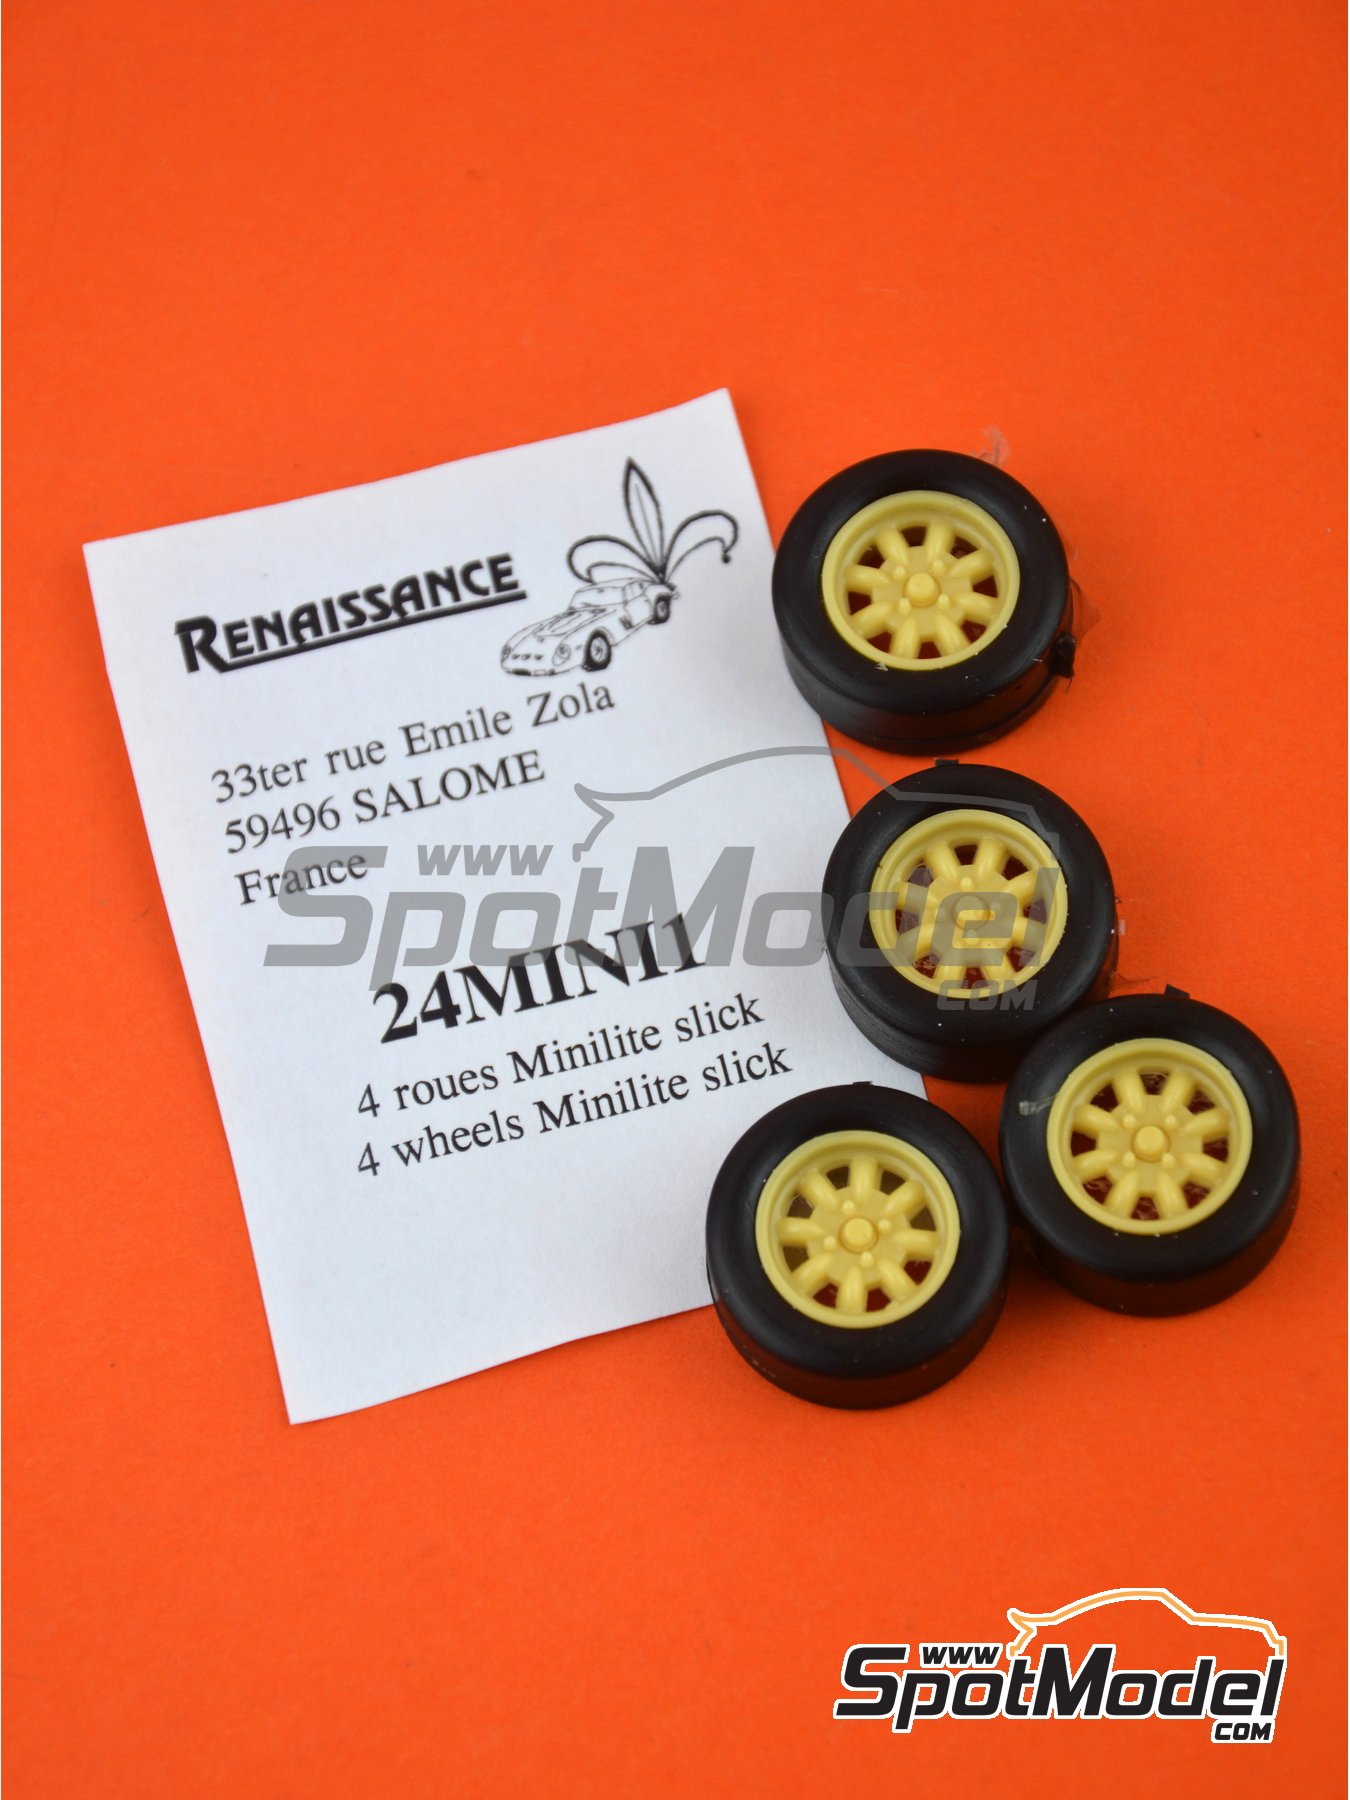 Minilite 13 inches | Rims and tyres set in 1/24 scale manufactured by Renaissance Models (ref. 24MINI1) image